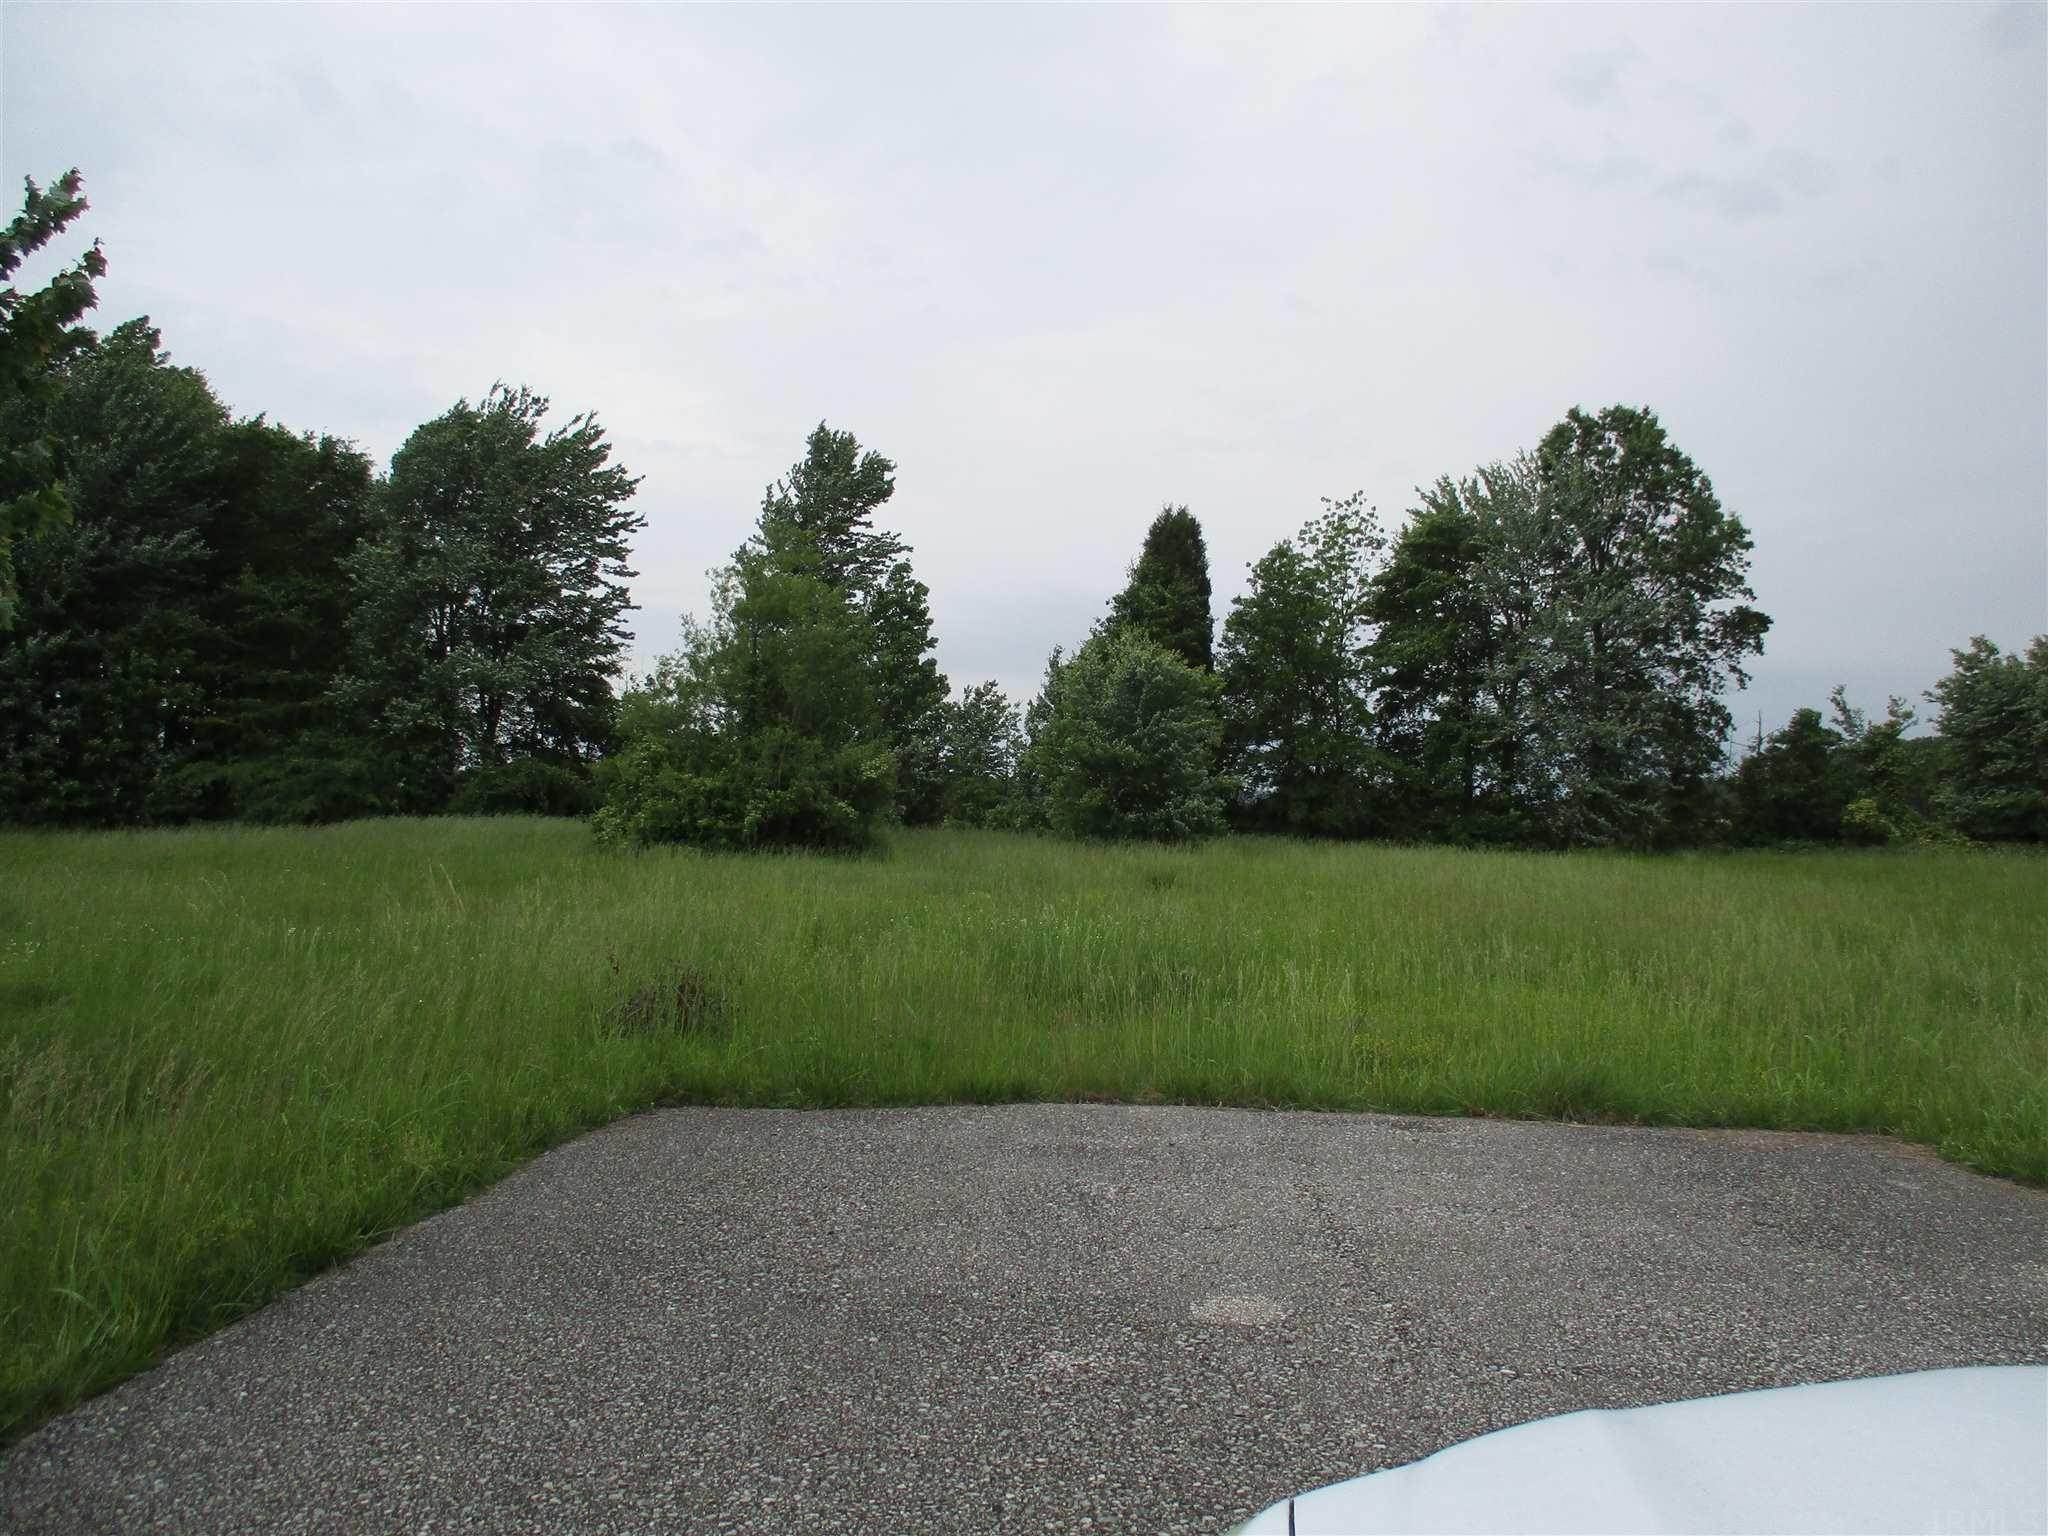 Residential Lots & Land for Sale at Tulip Lane Grandview, Indiana 47635 United States